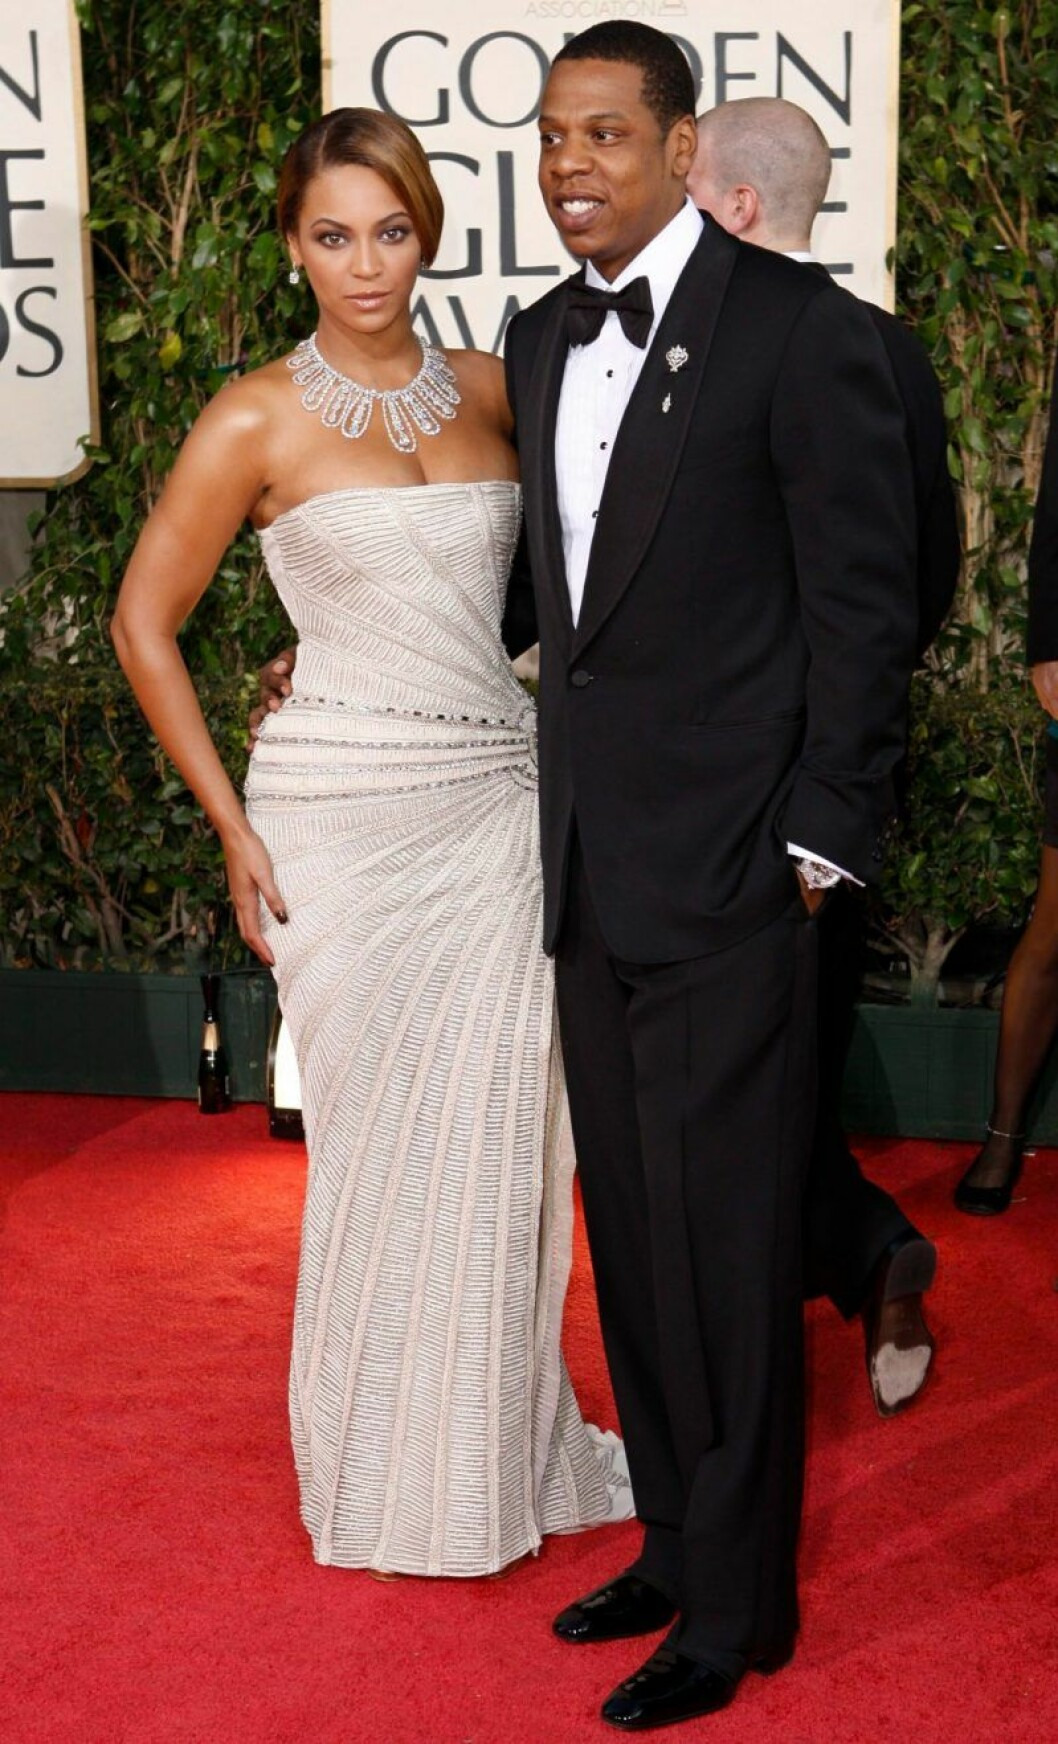 beyone golden globes 2009